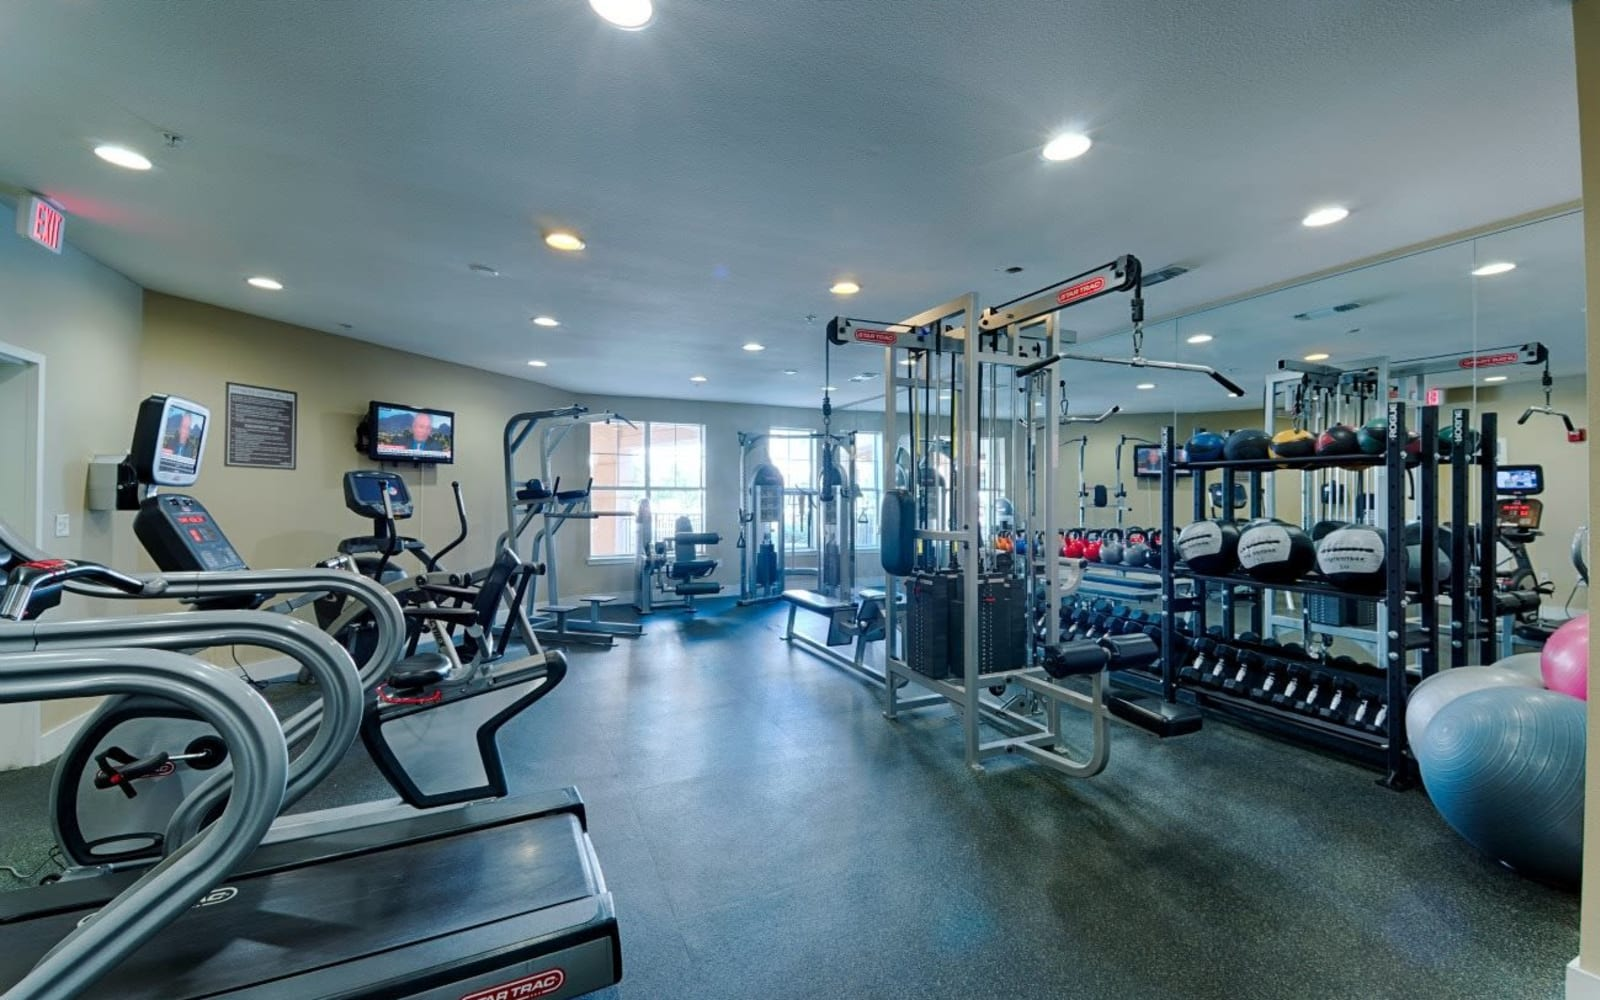 Fitness center at The Preserve in New Orleans, Louisiana